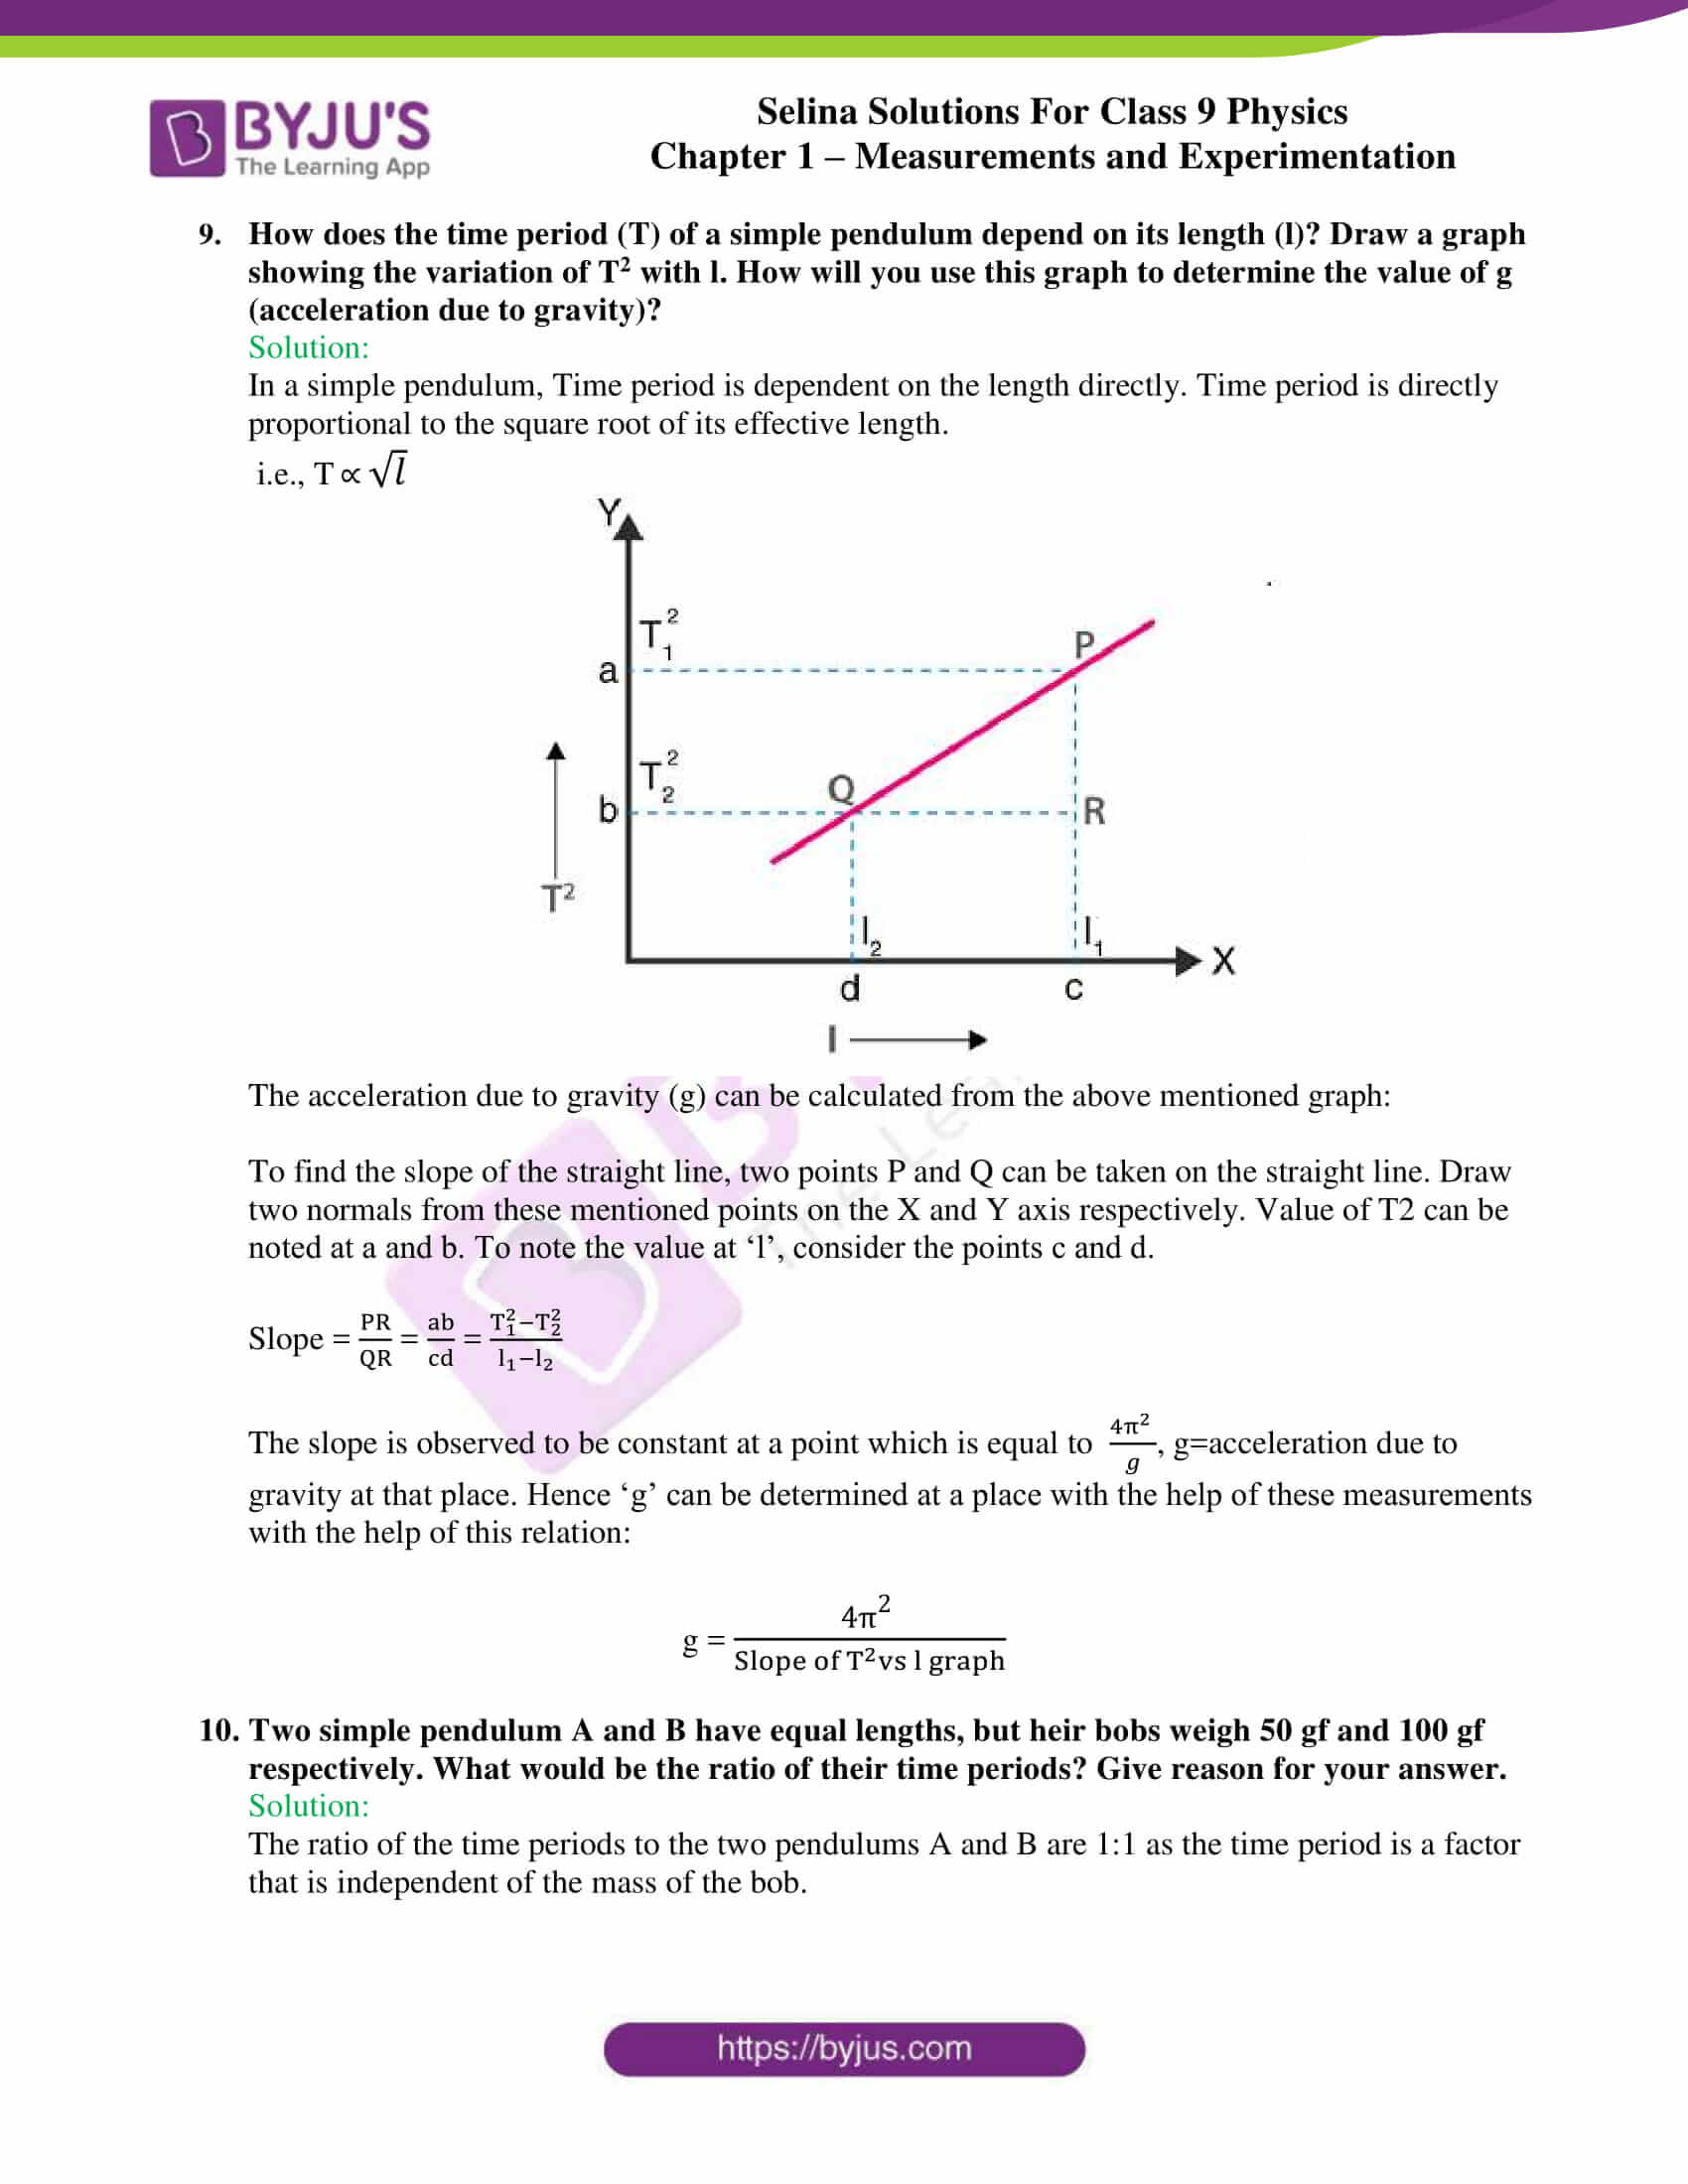 selina solutions class 9 physics chapter 1 Measurements and Experimentation part 27